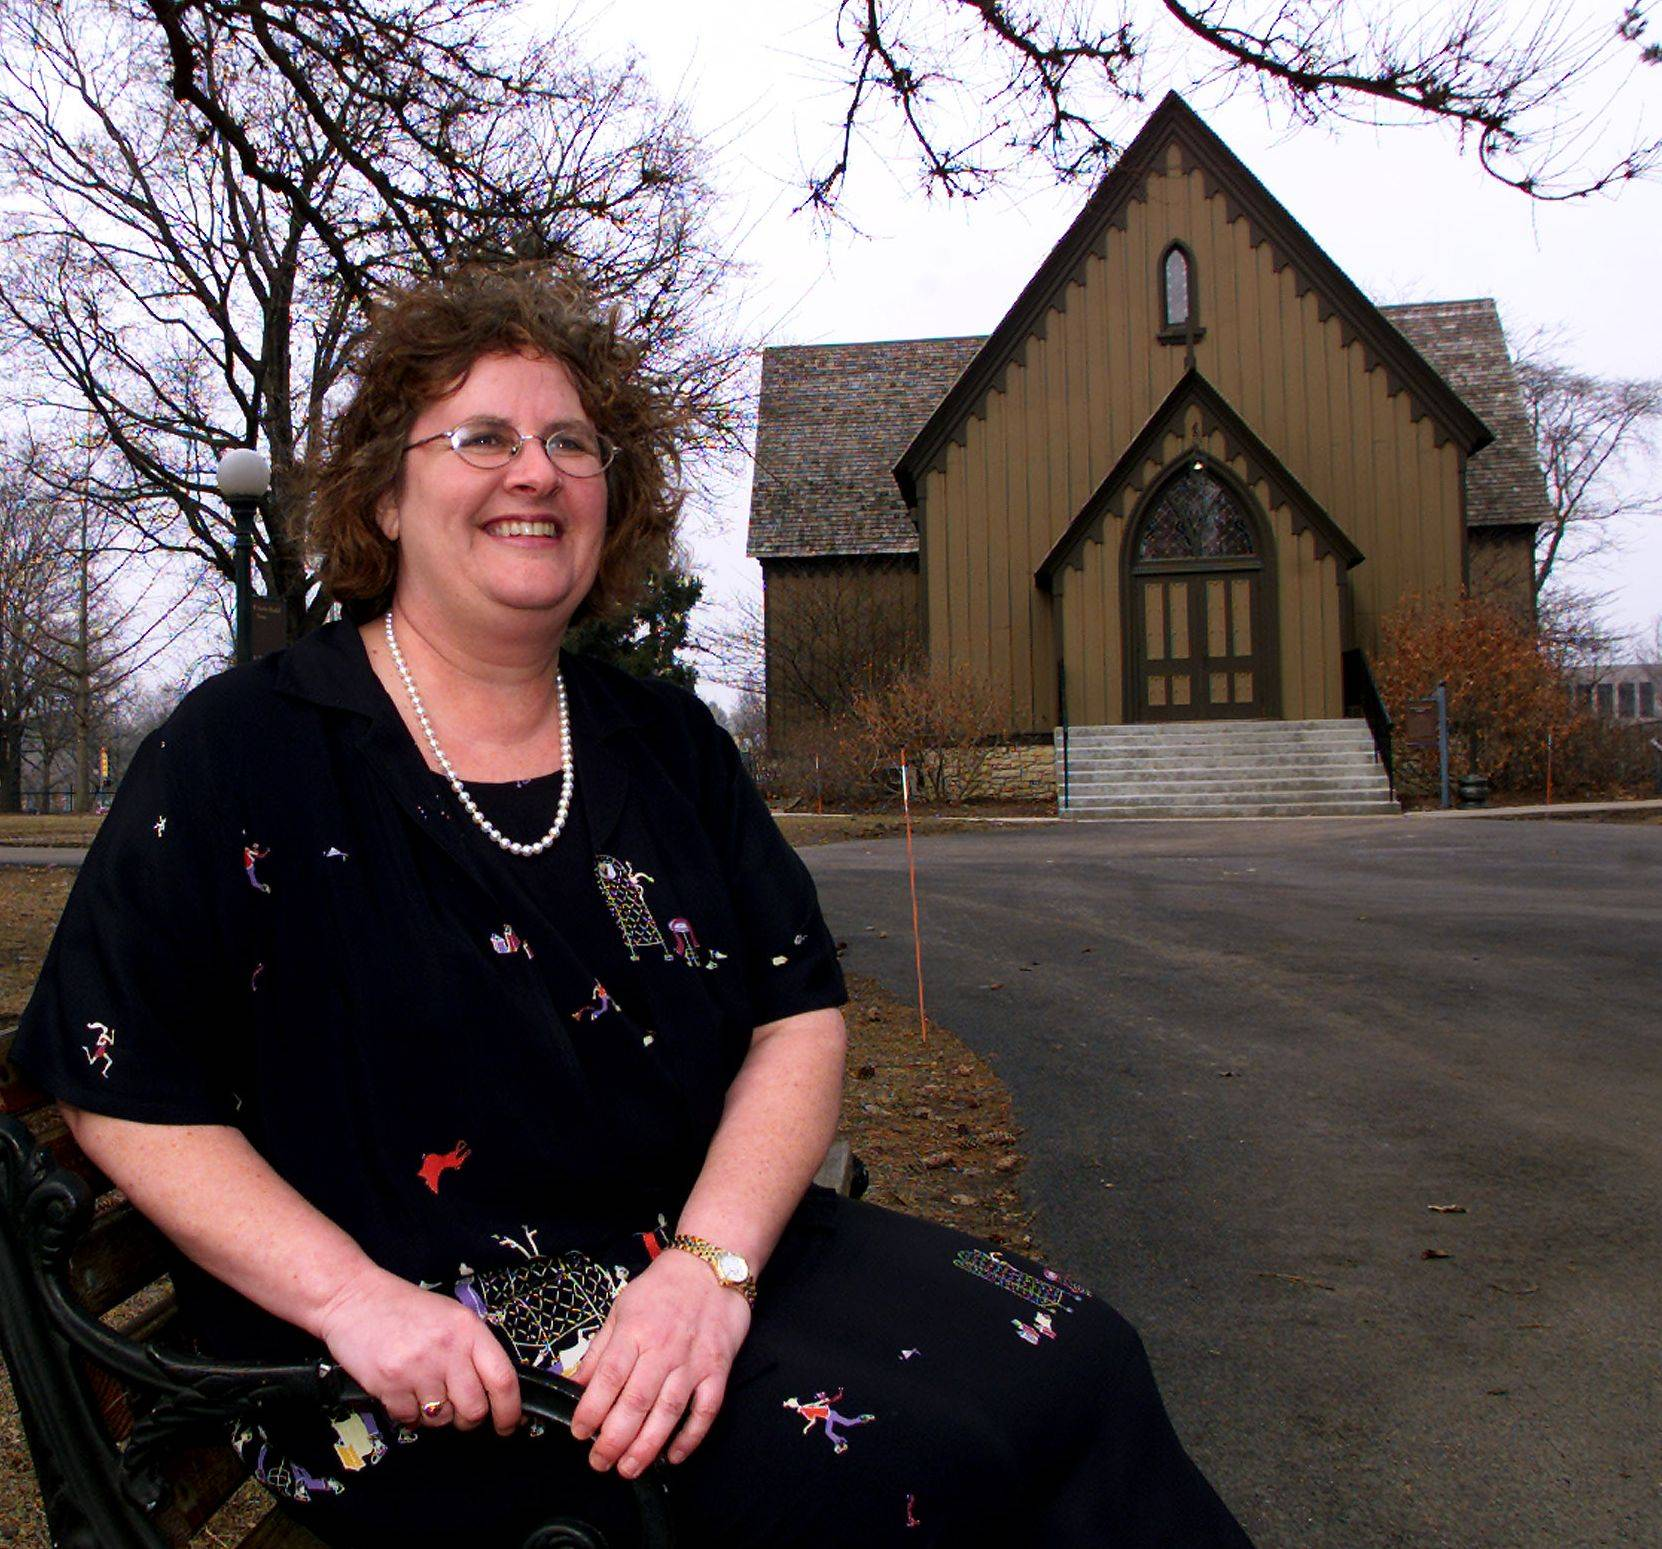 Naperville Heritage Society awaits new leader